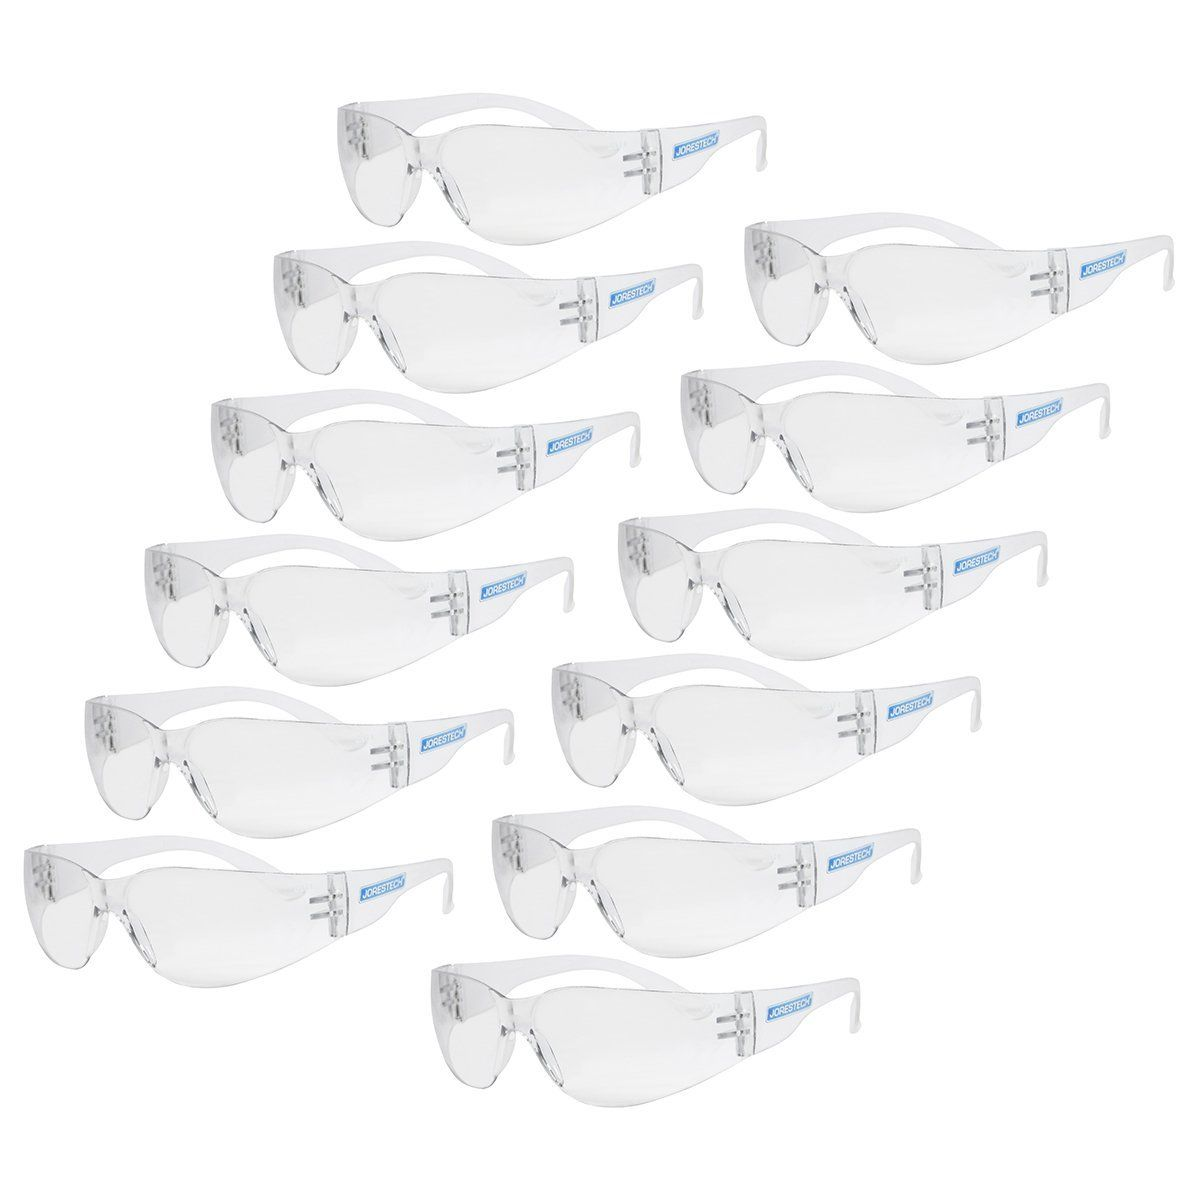 JORESTECH Eyewear Protective Safety Glasses Pack of 12 (Clear) - - Amazon.com